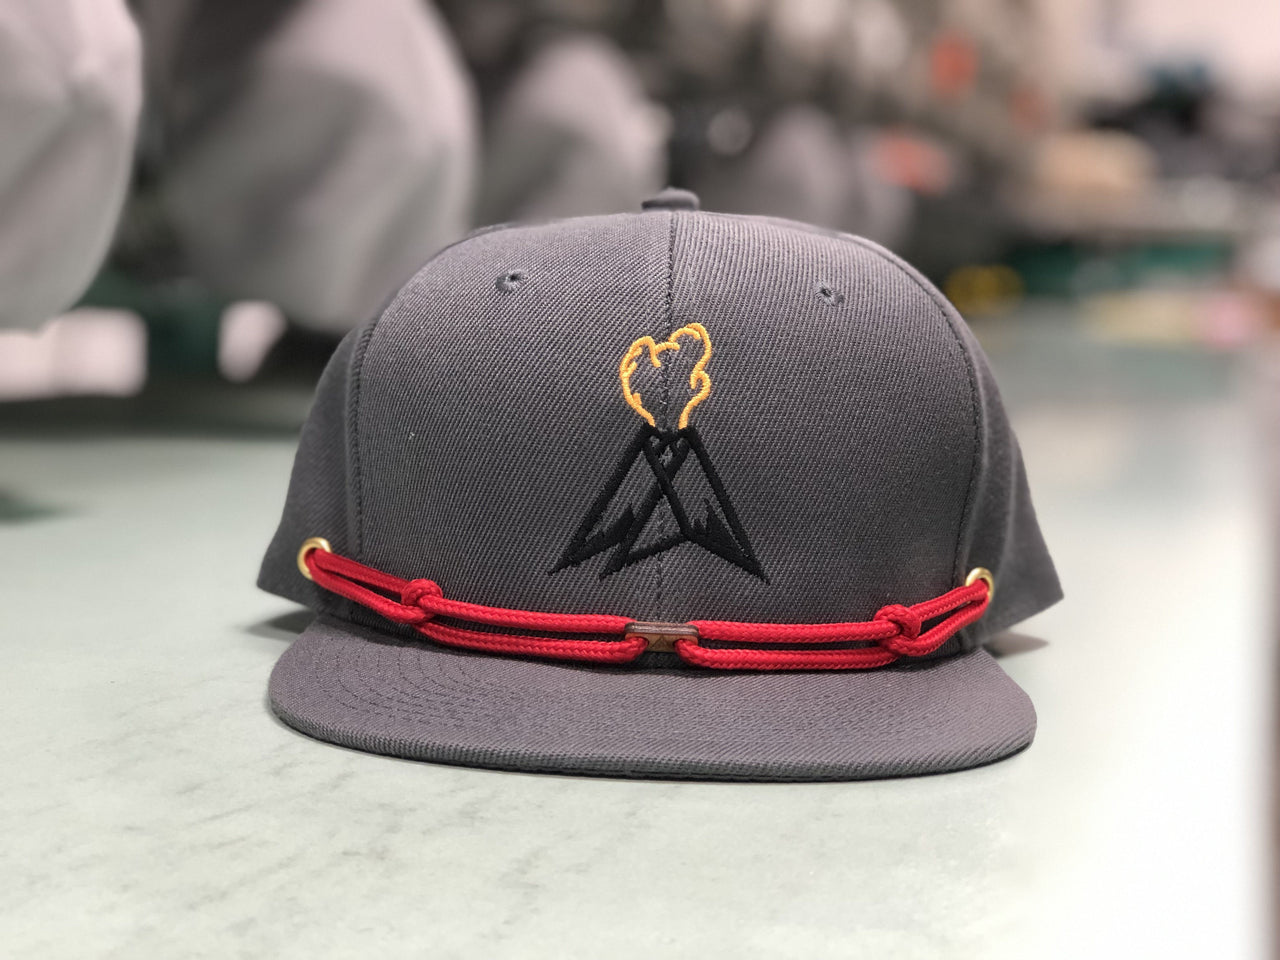 Volcano Limited Edition Hats Findlay Hats